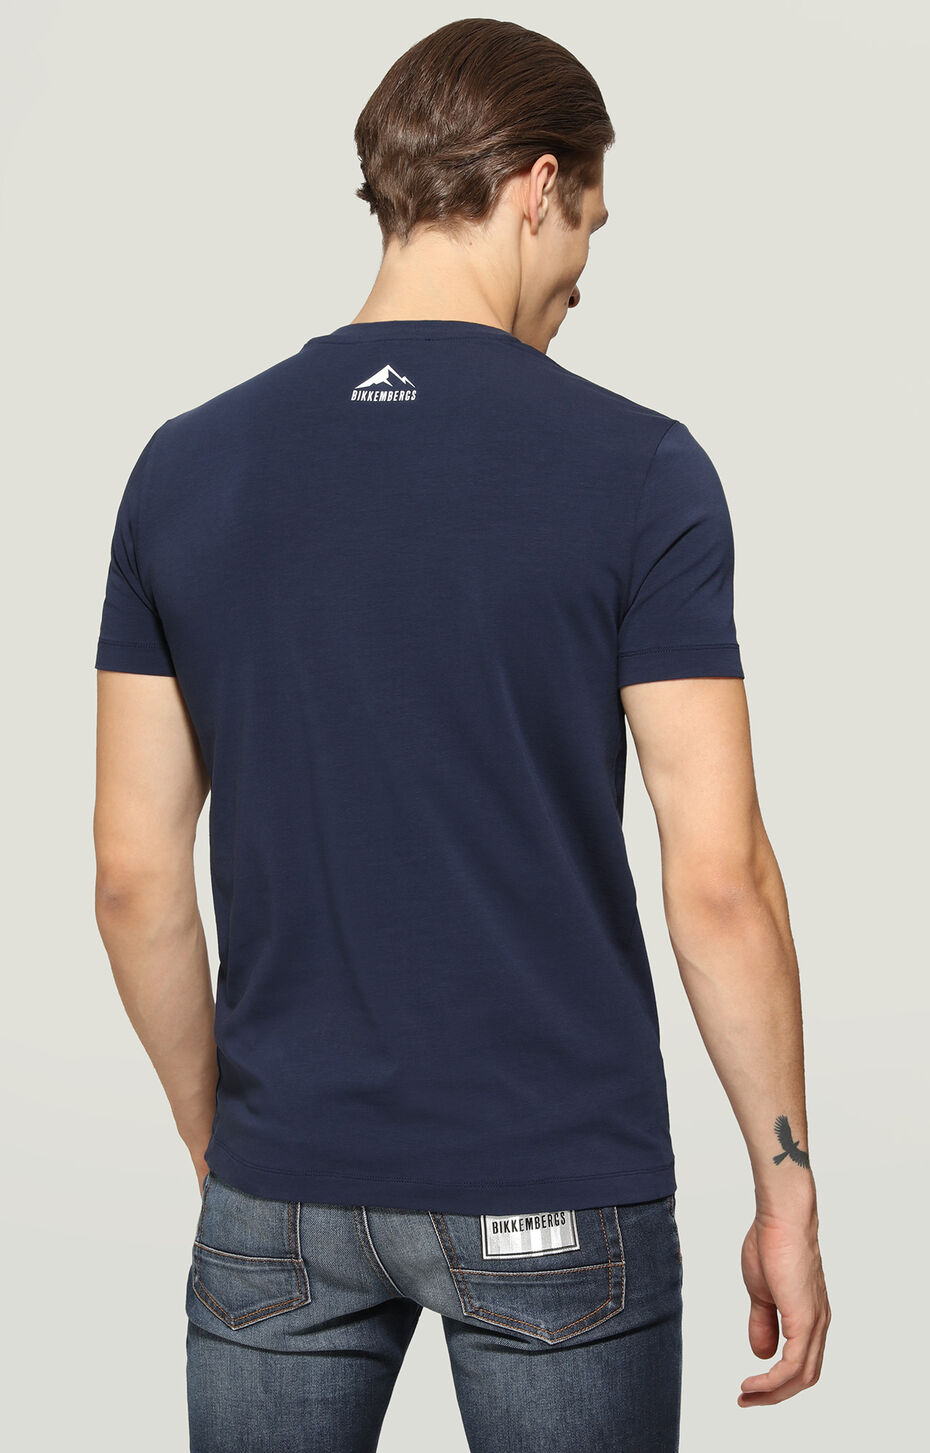 T-SHIRT, Blue, hi-res-1